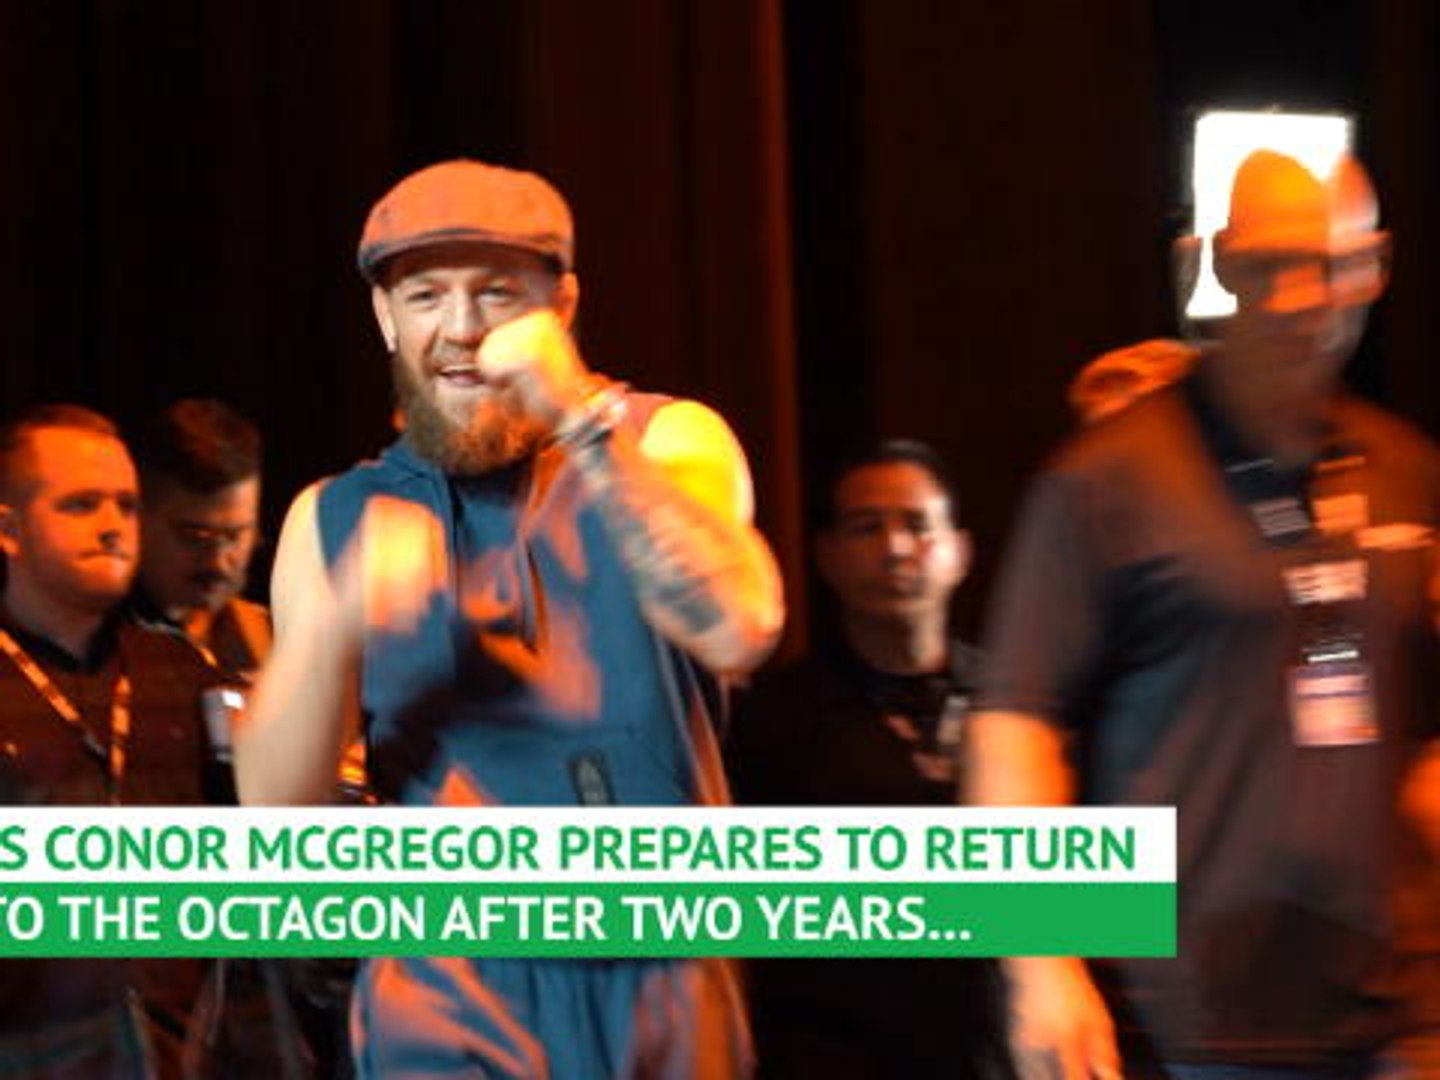 McGregor aiming to send Khabib 'back home to the mountains' at UFC 229